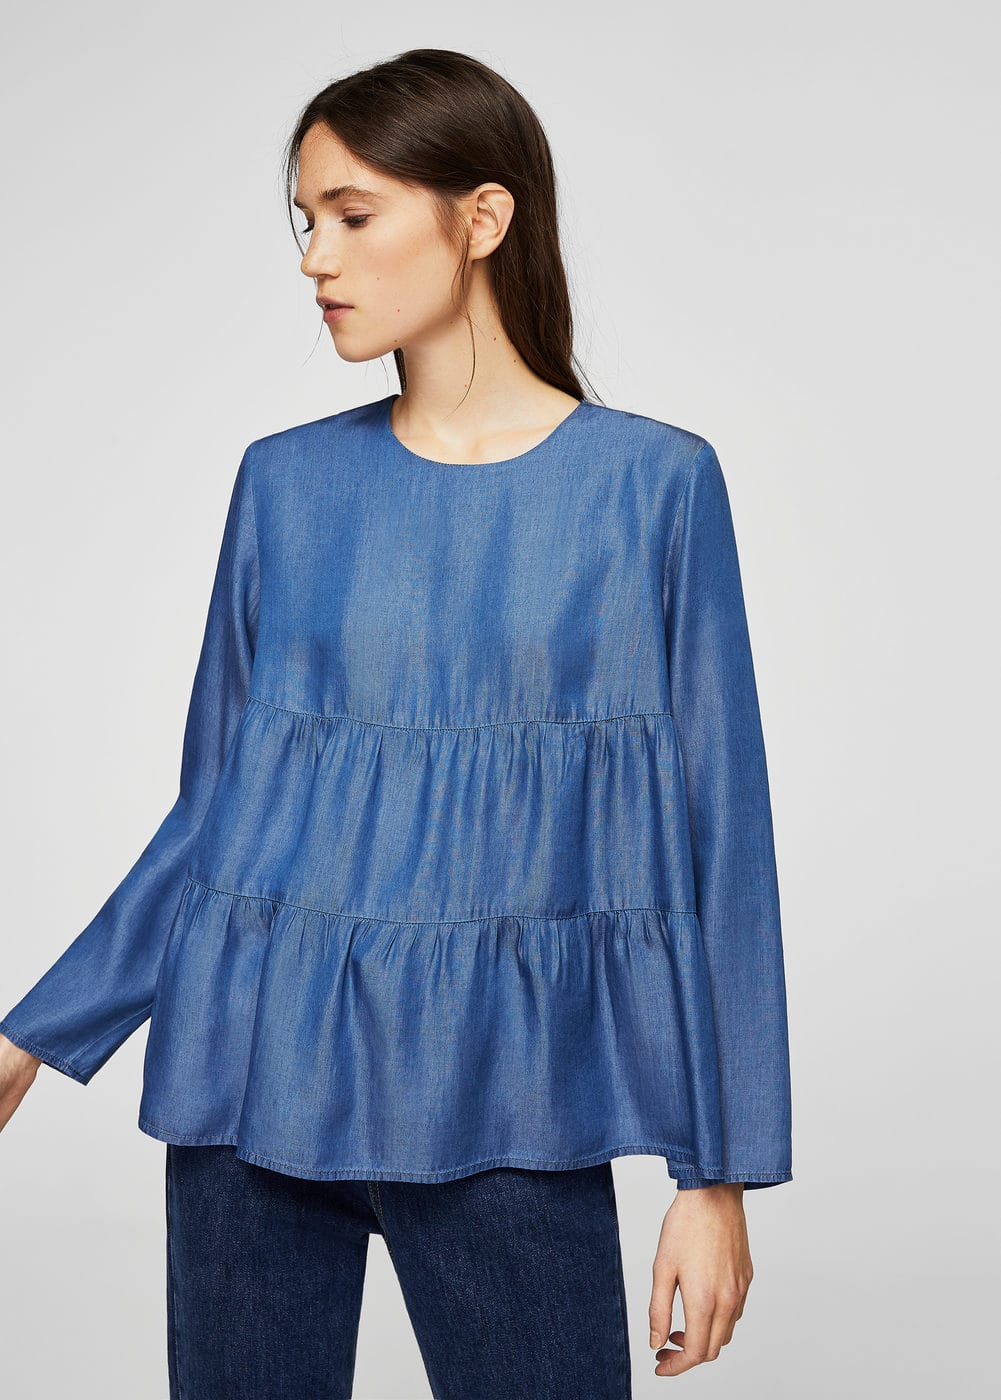 Ruched detail soft fabric blouse | MNG